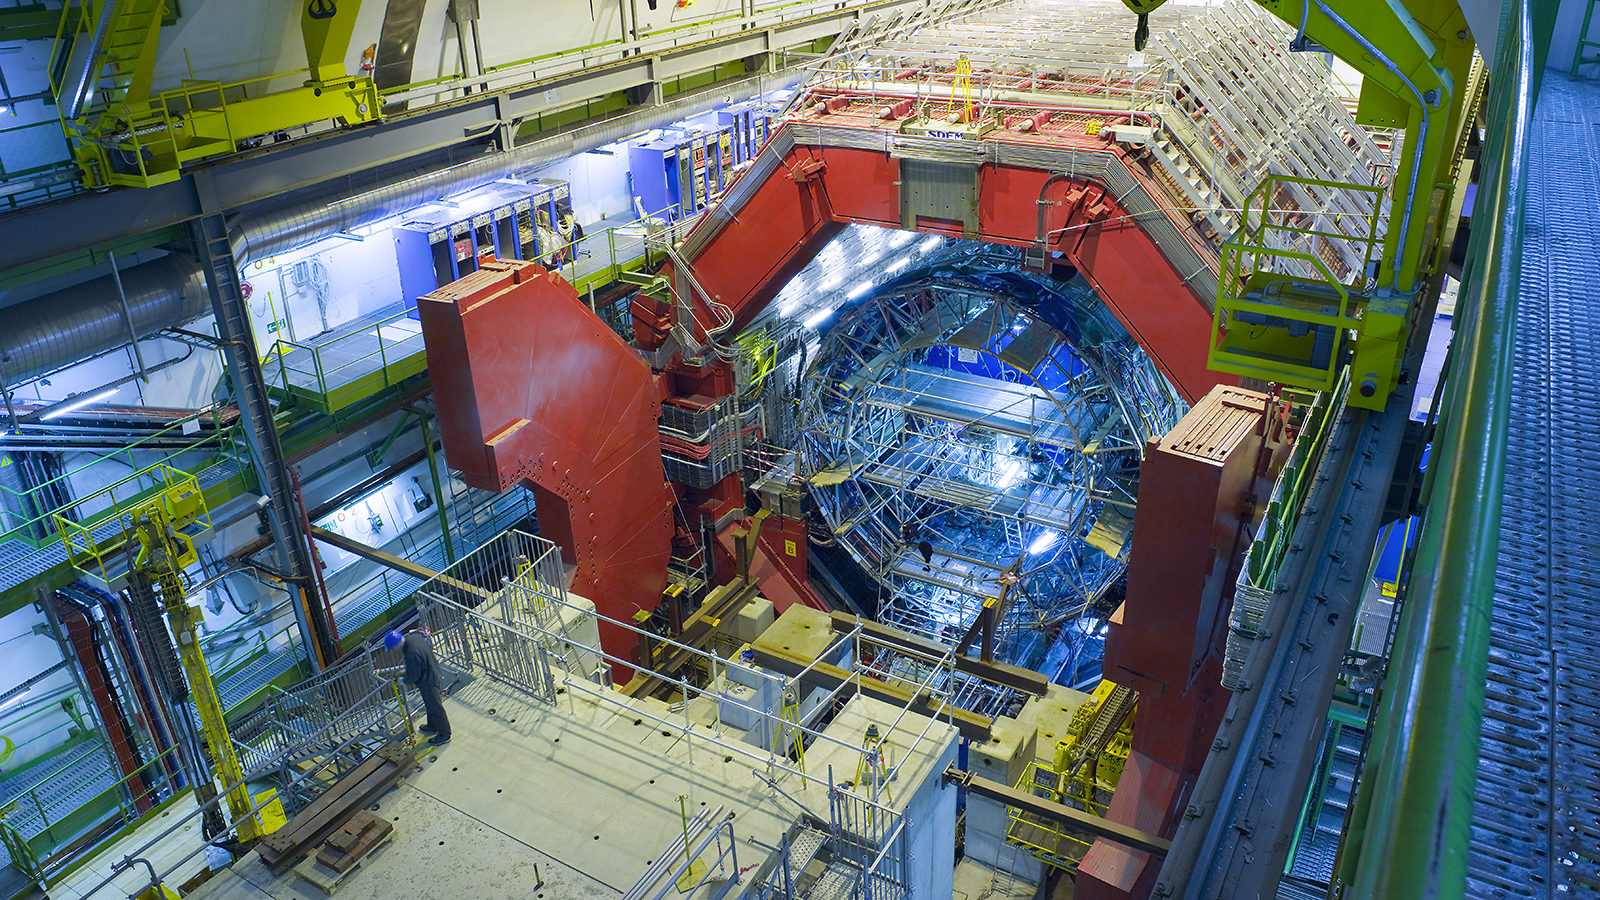 ALICE detector with its red doors open